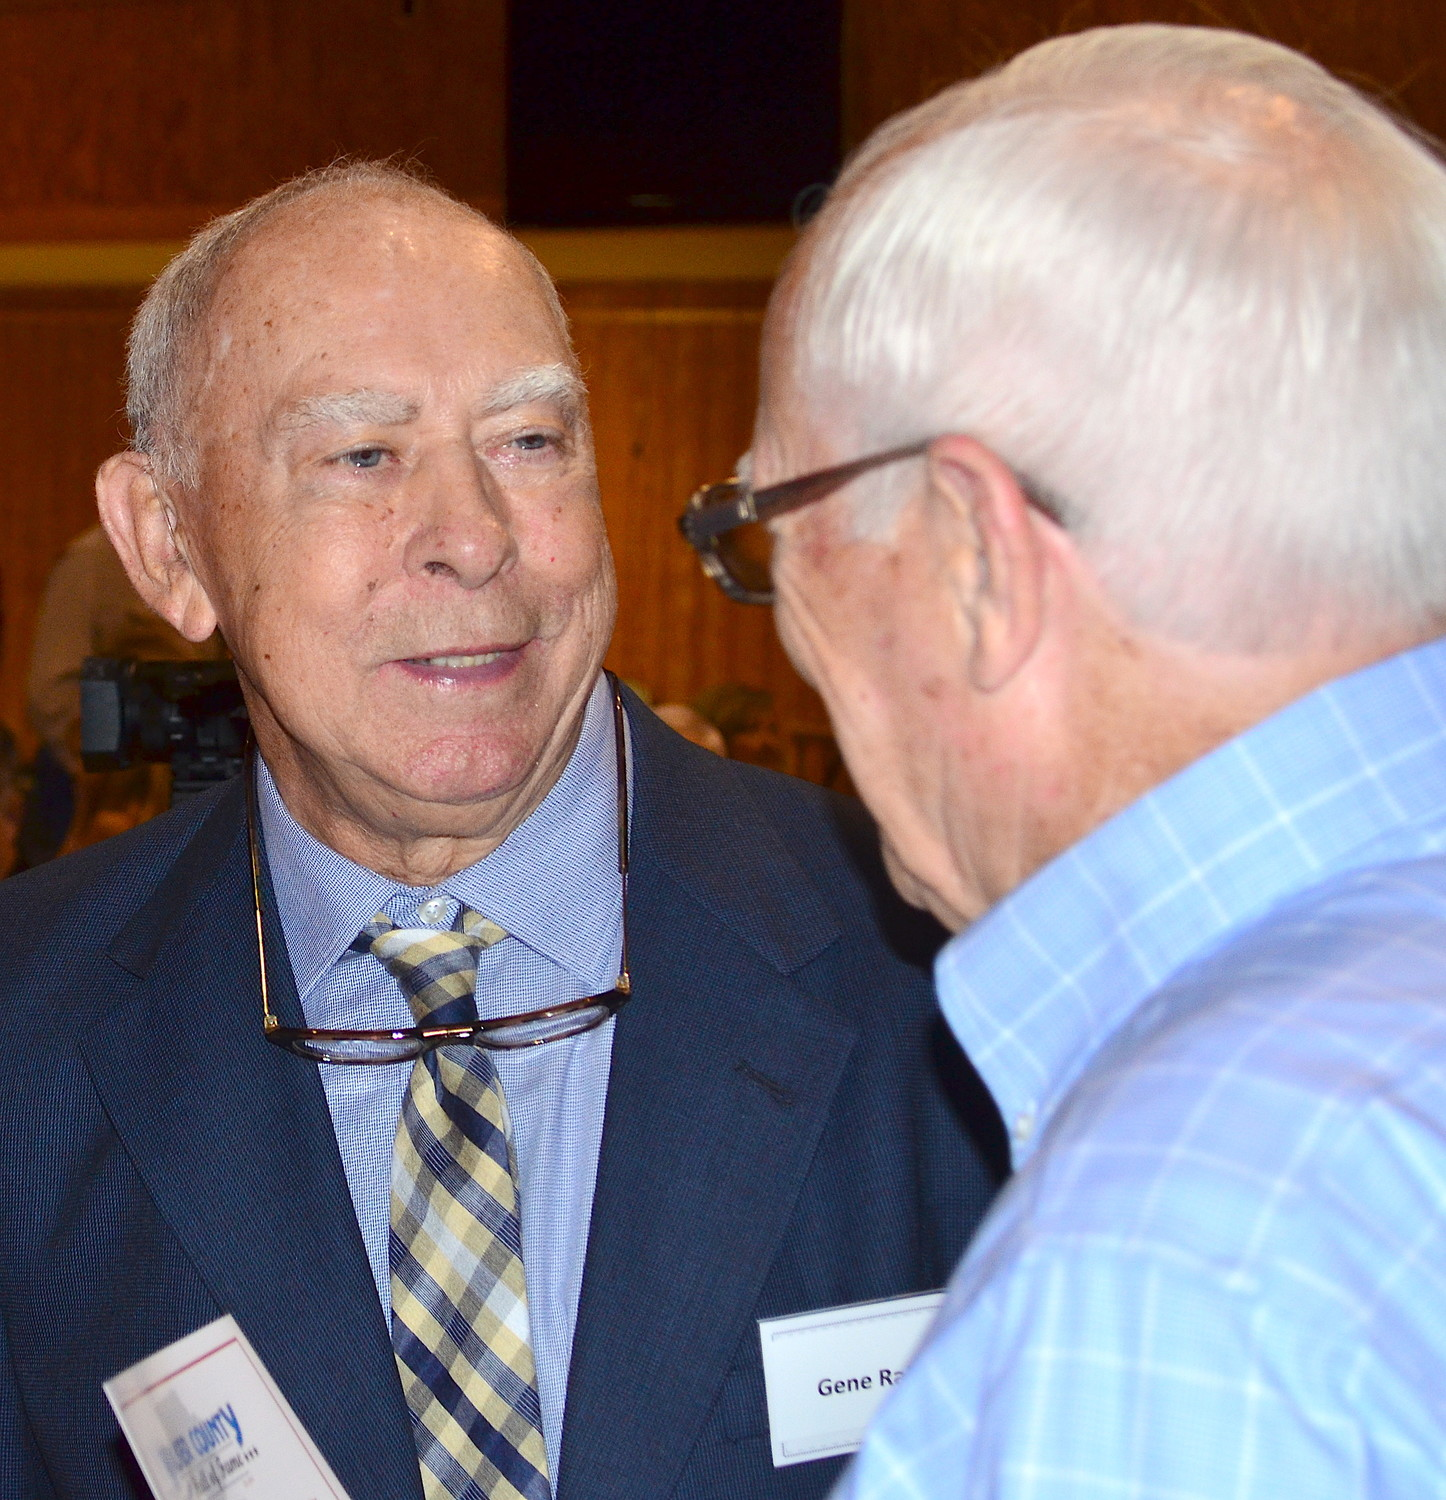 Walker County Sports Hall of Fame inductee Gene Raburn talks to a well-wisher before Saturday's ceremony.